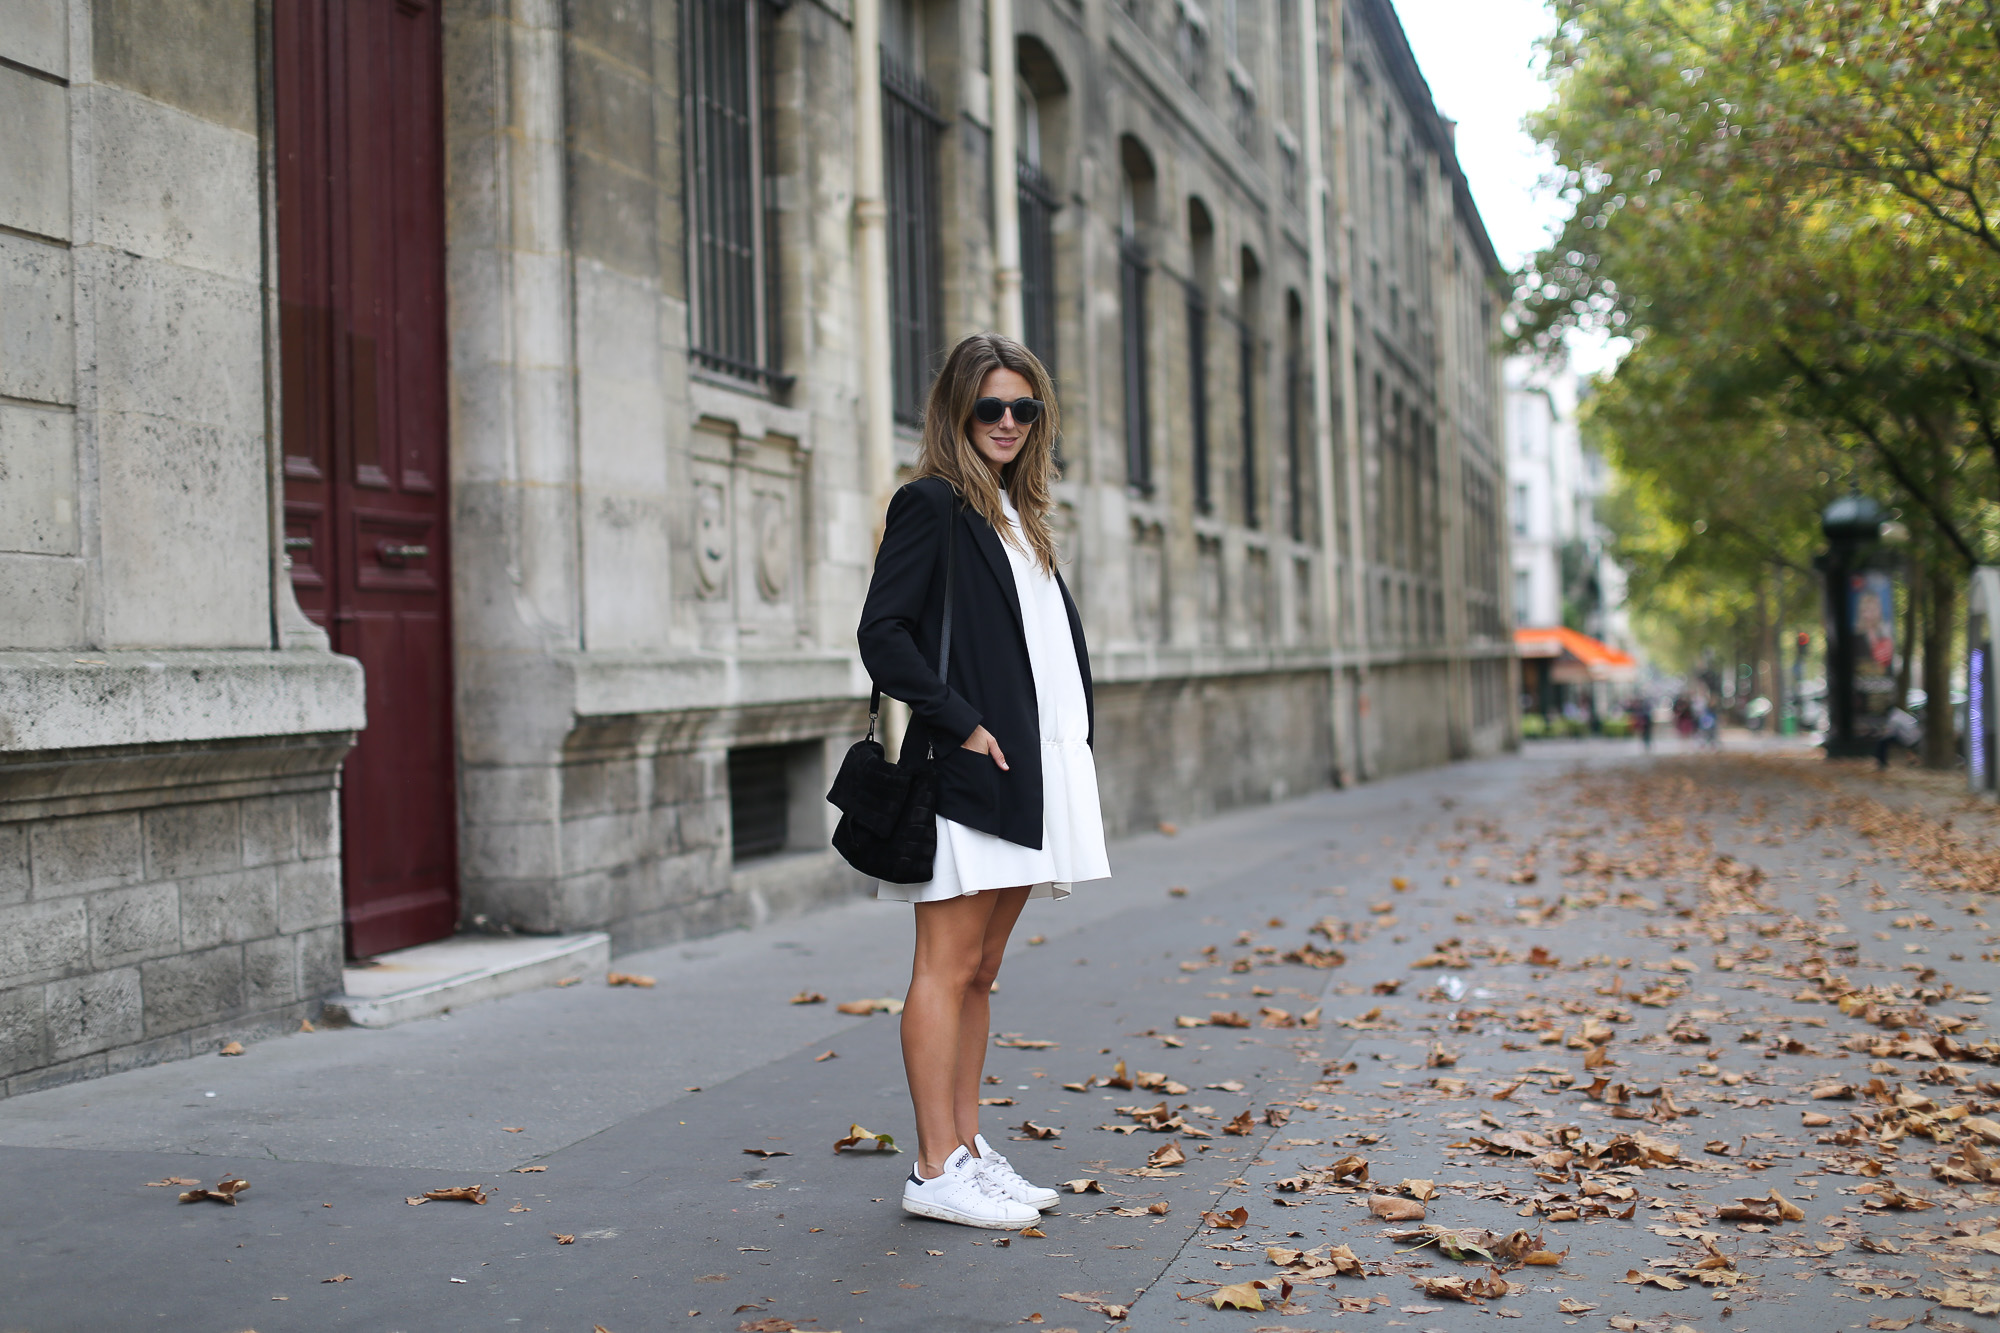 Clochet_paris_h&m_trend_white_neoprene_dress_adidas_stan_smith-1-5